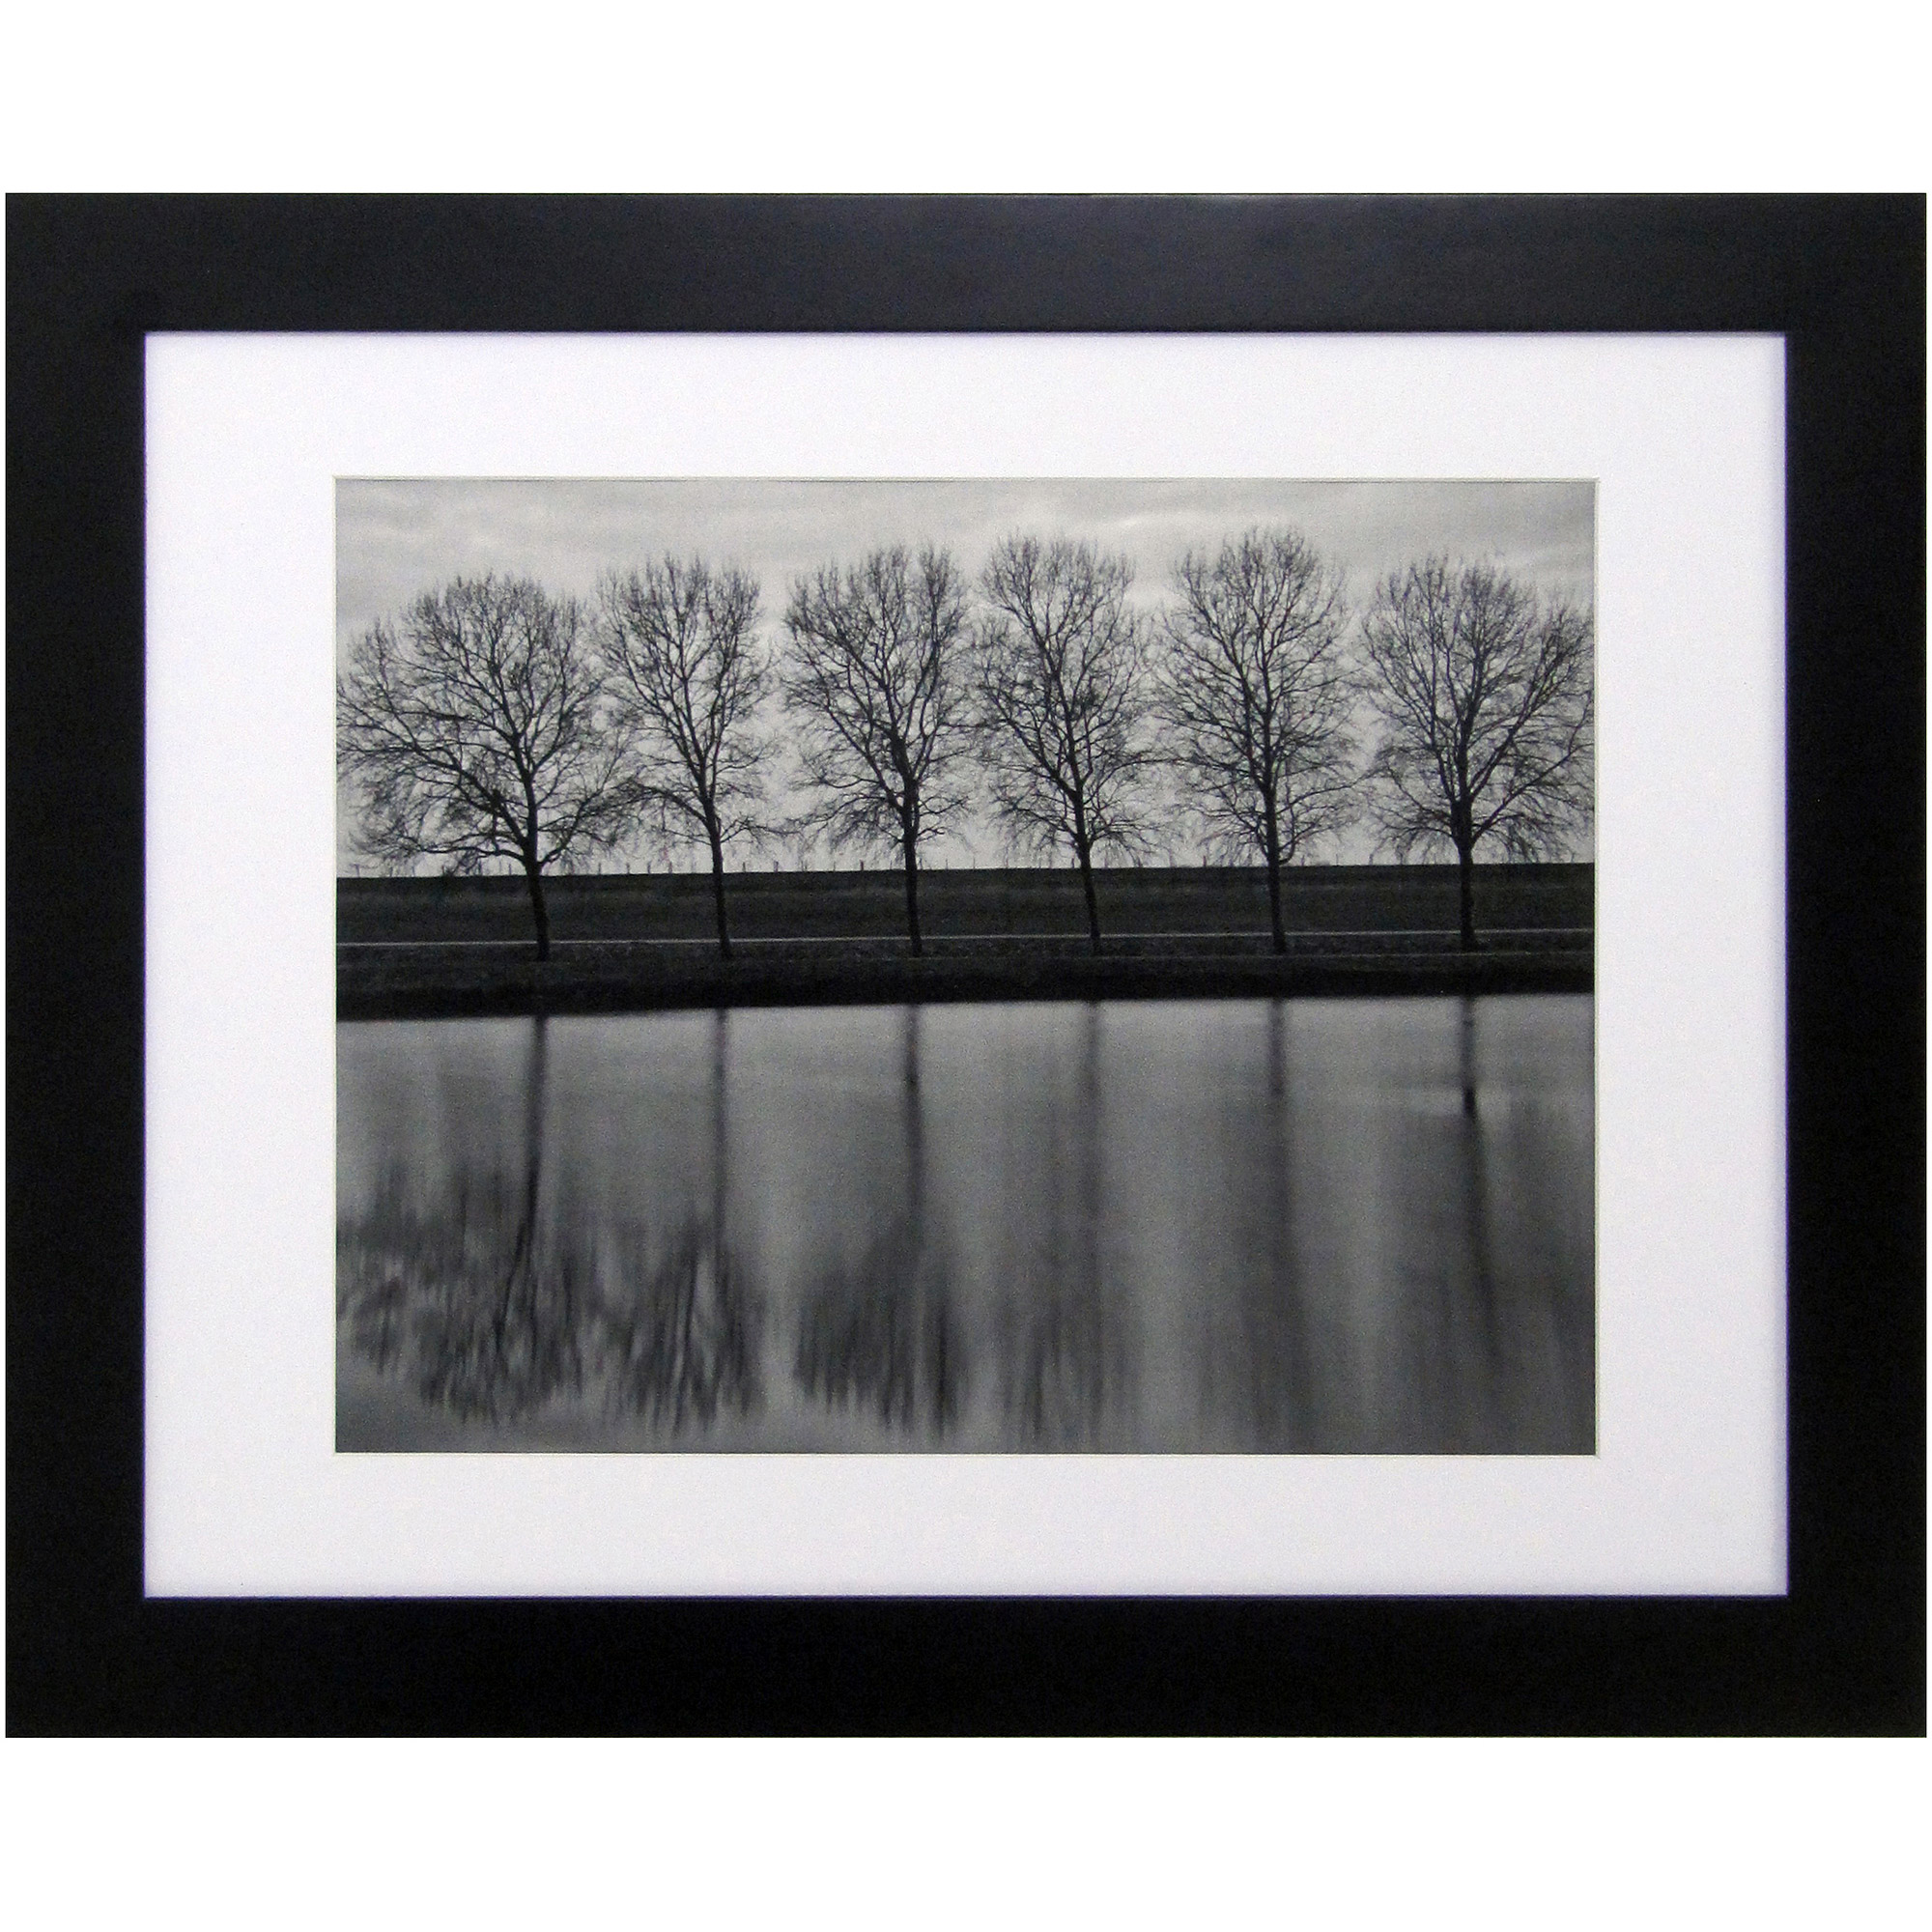 "Better Homes and Gardens Black Picture Frame, 16"" x 20"", Matted to 11"" x 14"